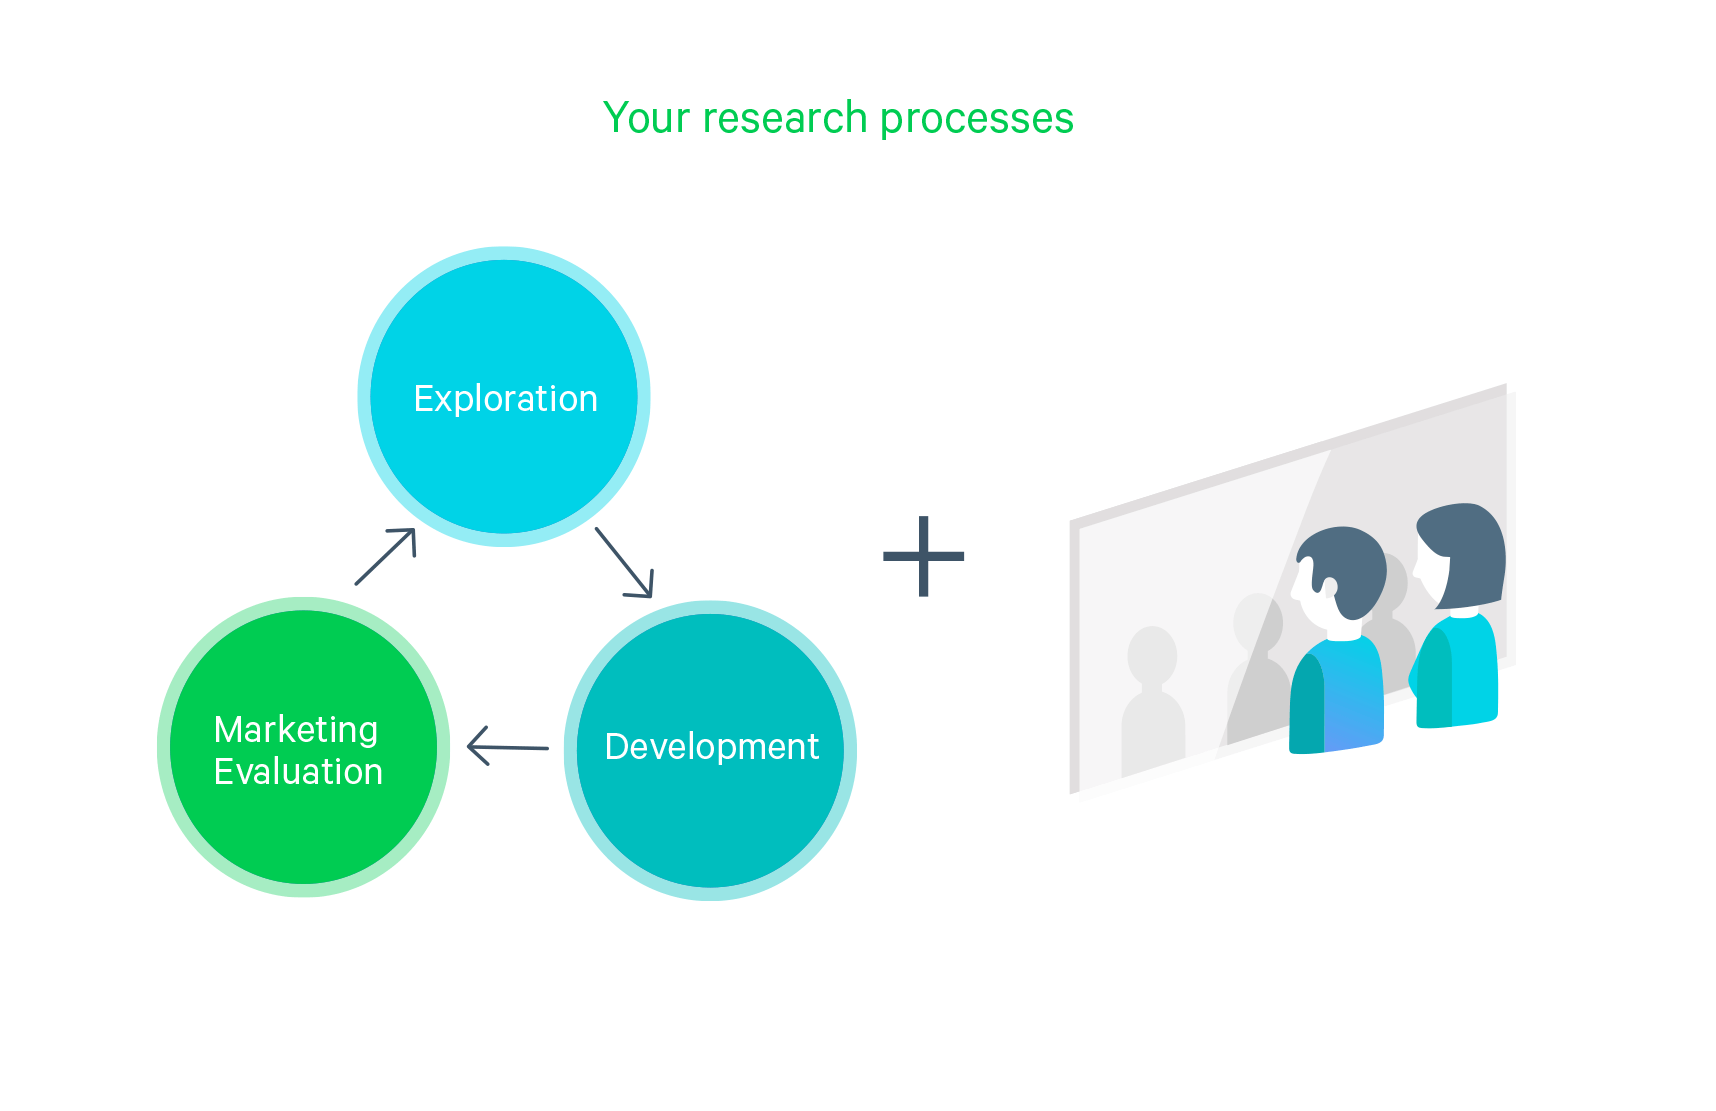 An illustration depicting your research processes including exploration, development, and marketing evaluation.